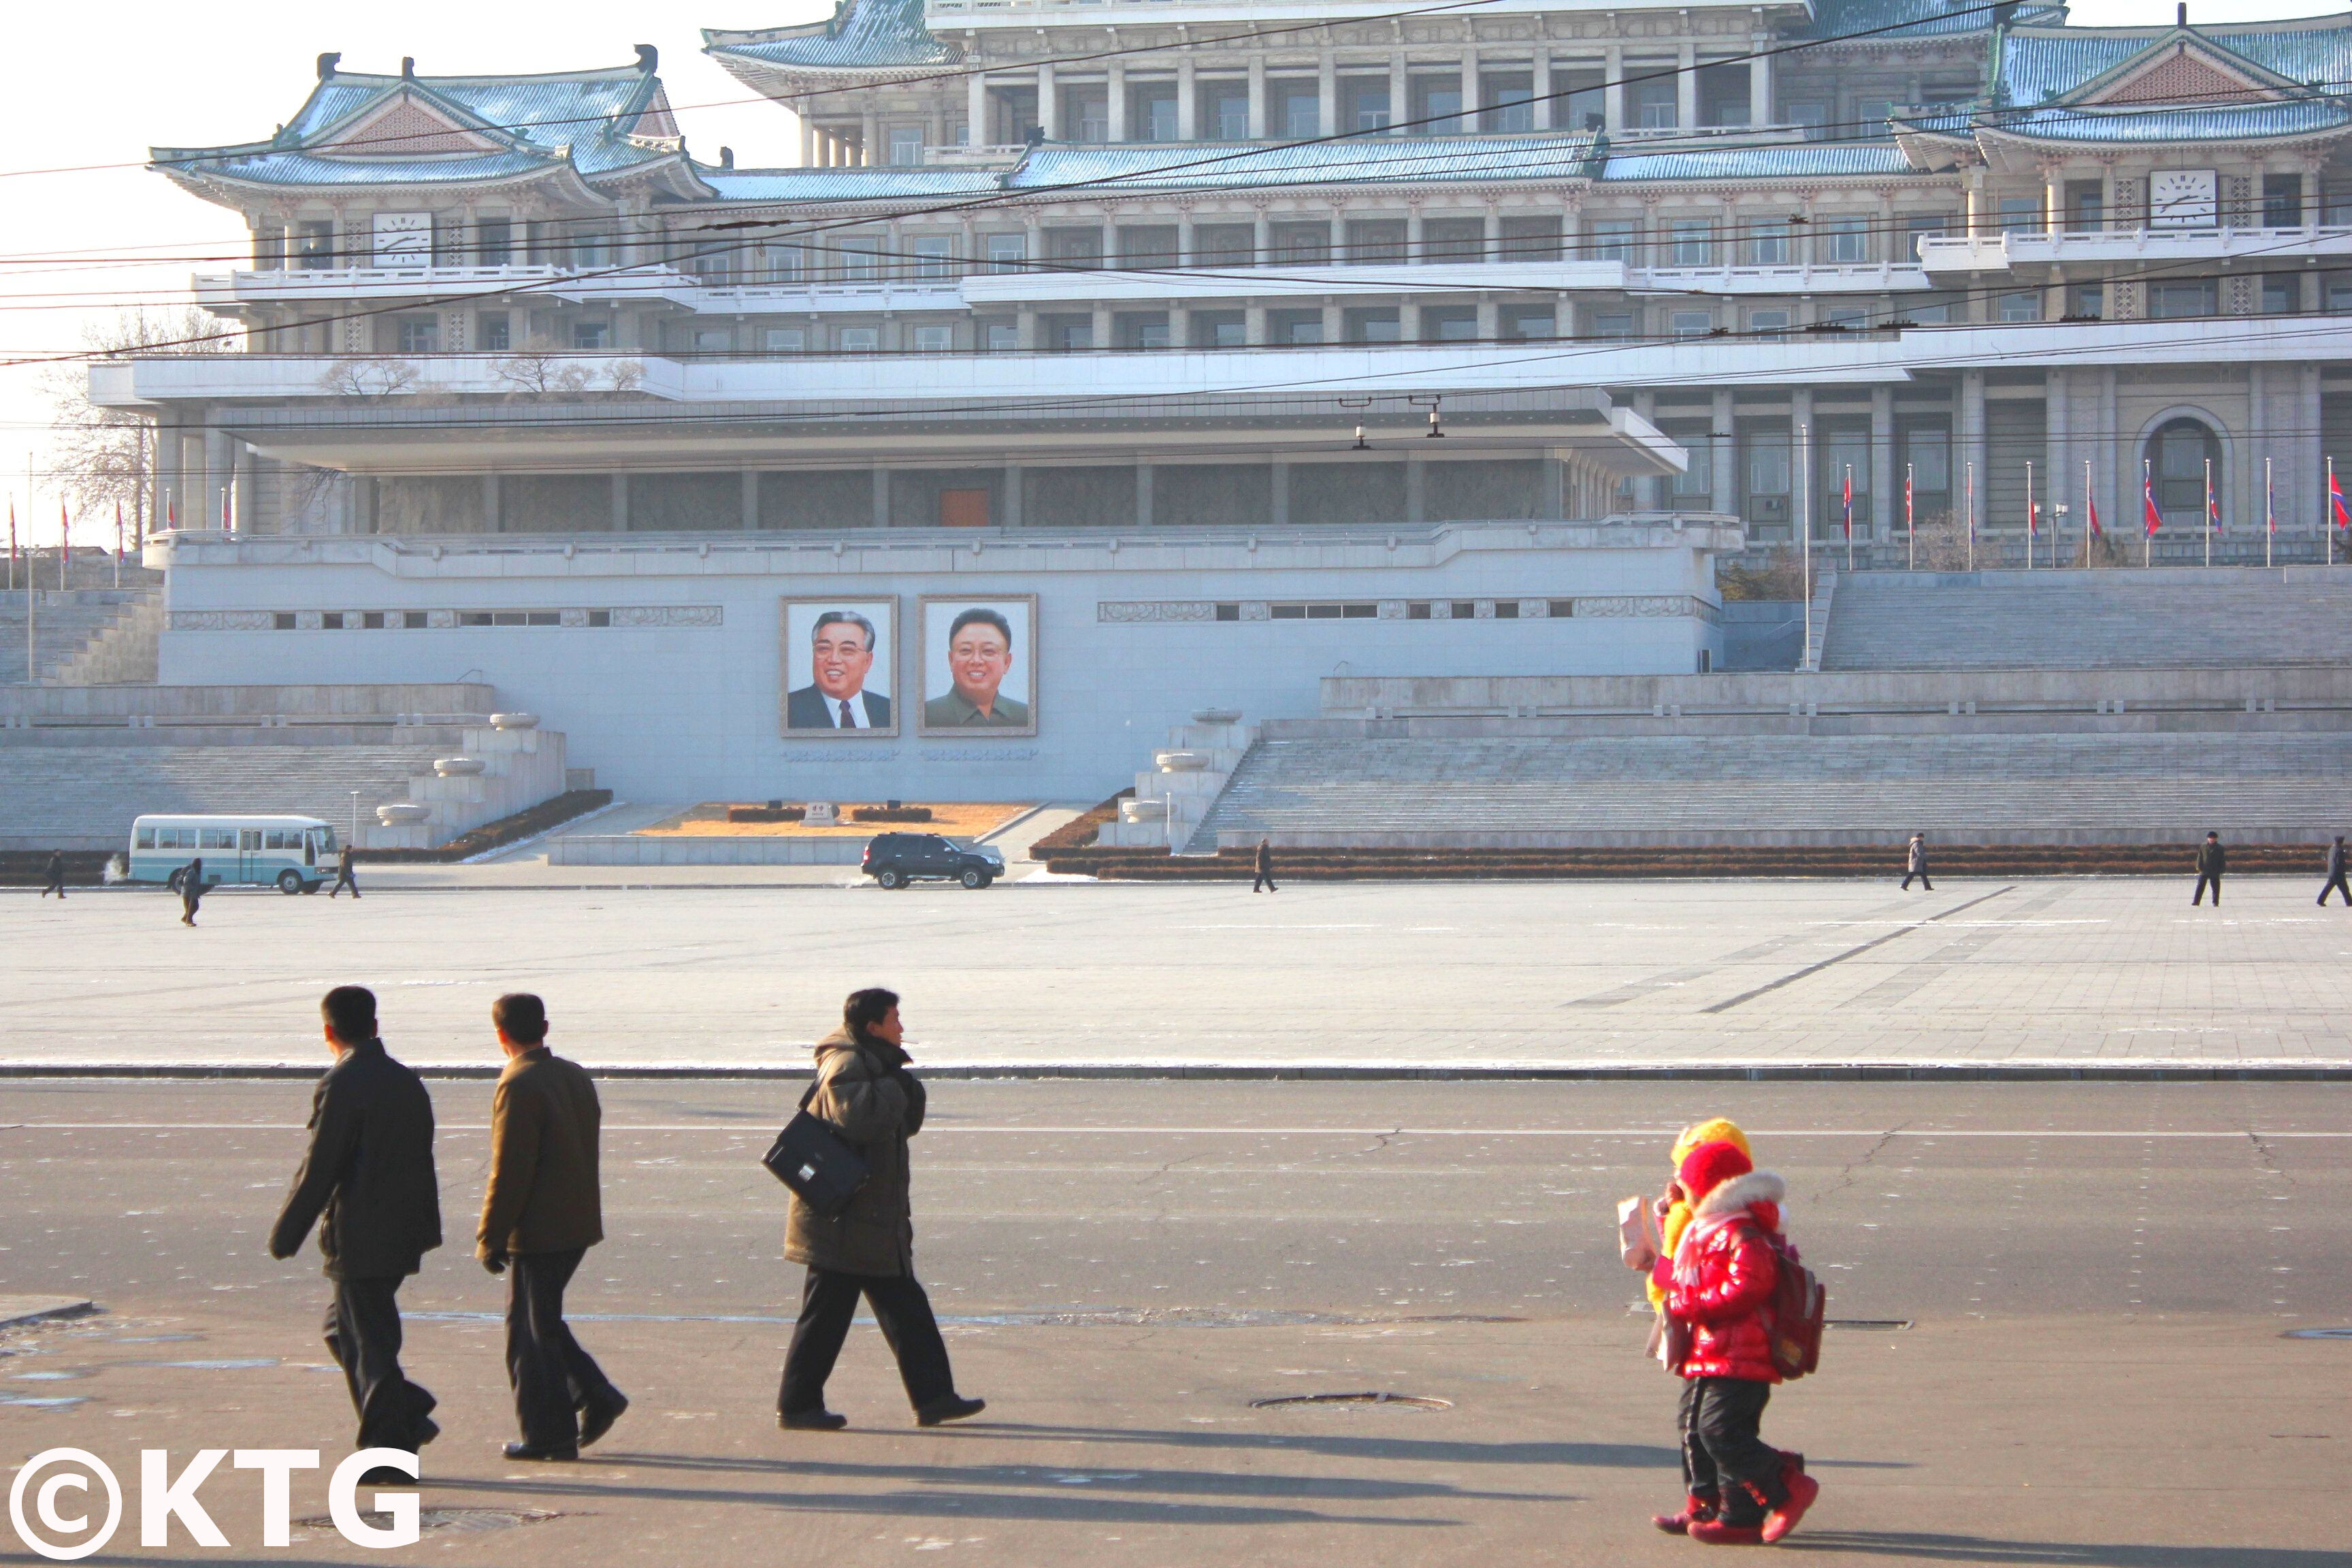 Portraits of leader Kim Jong Il and Kim Il Sung at Kim Il Sung Square in the heart of Pyongang, capital of North Korea (DPRK)